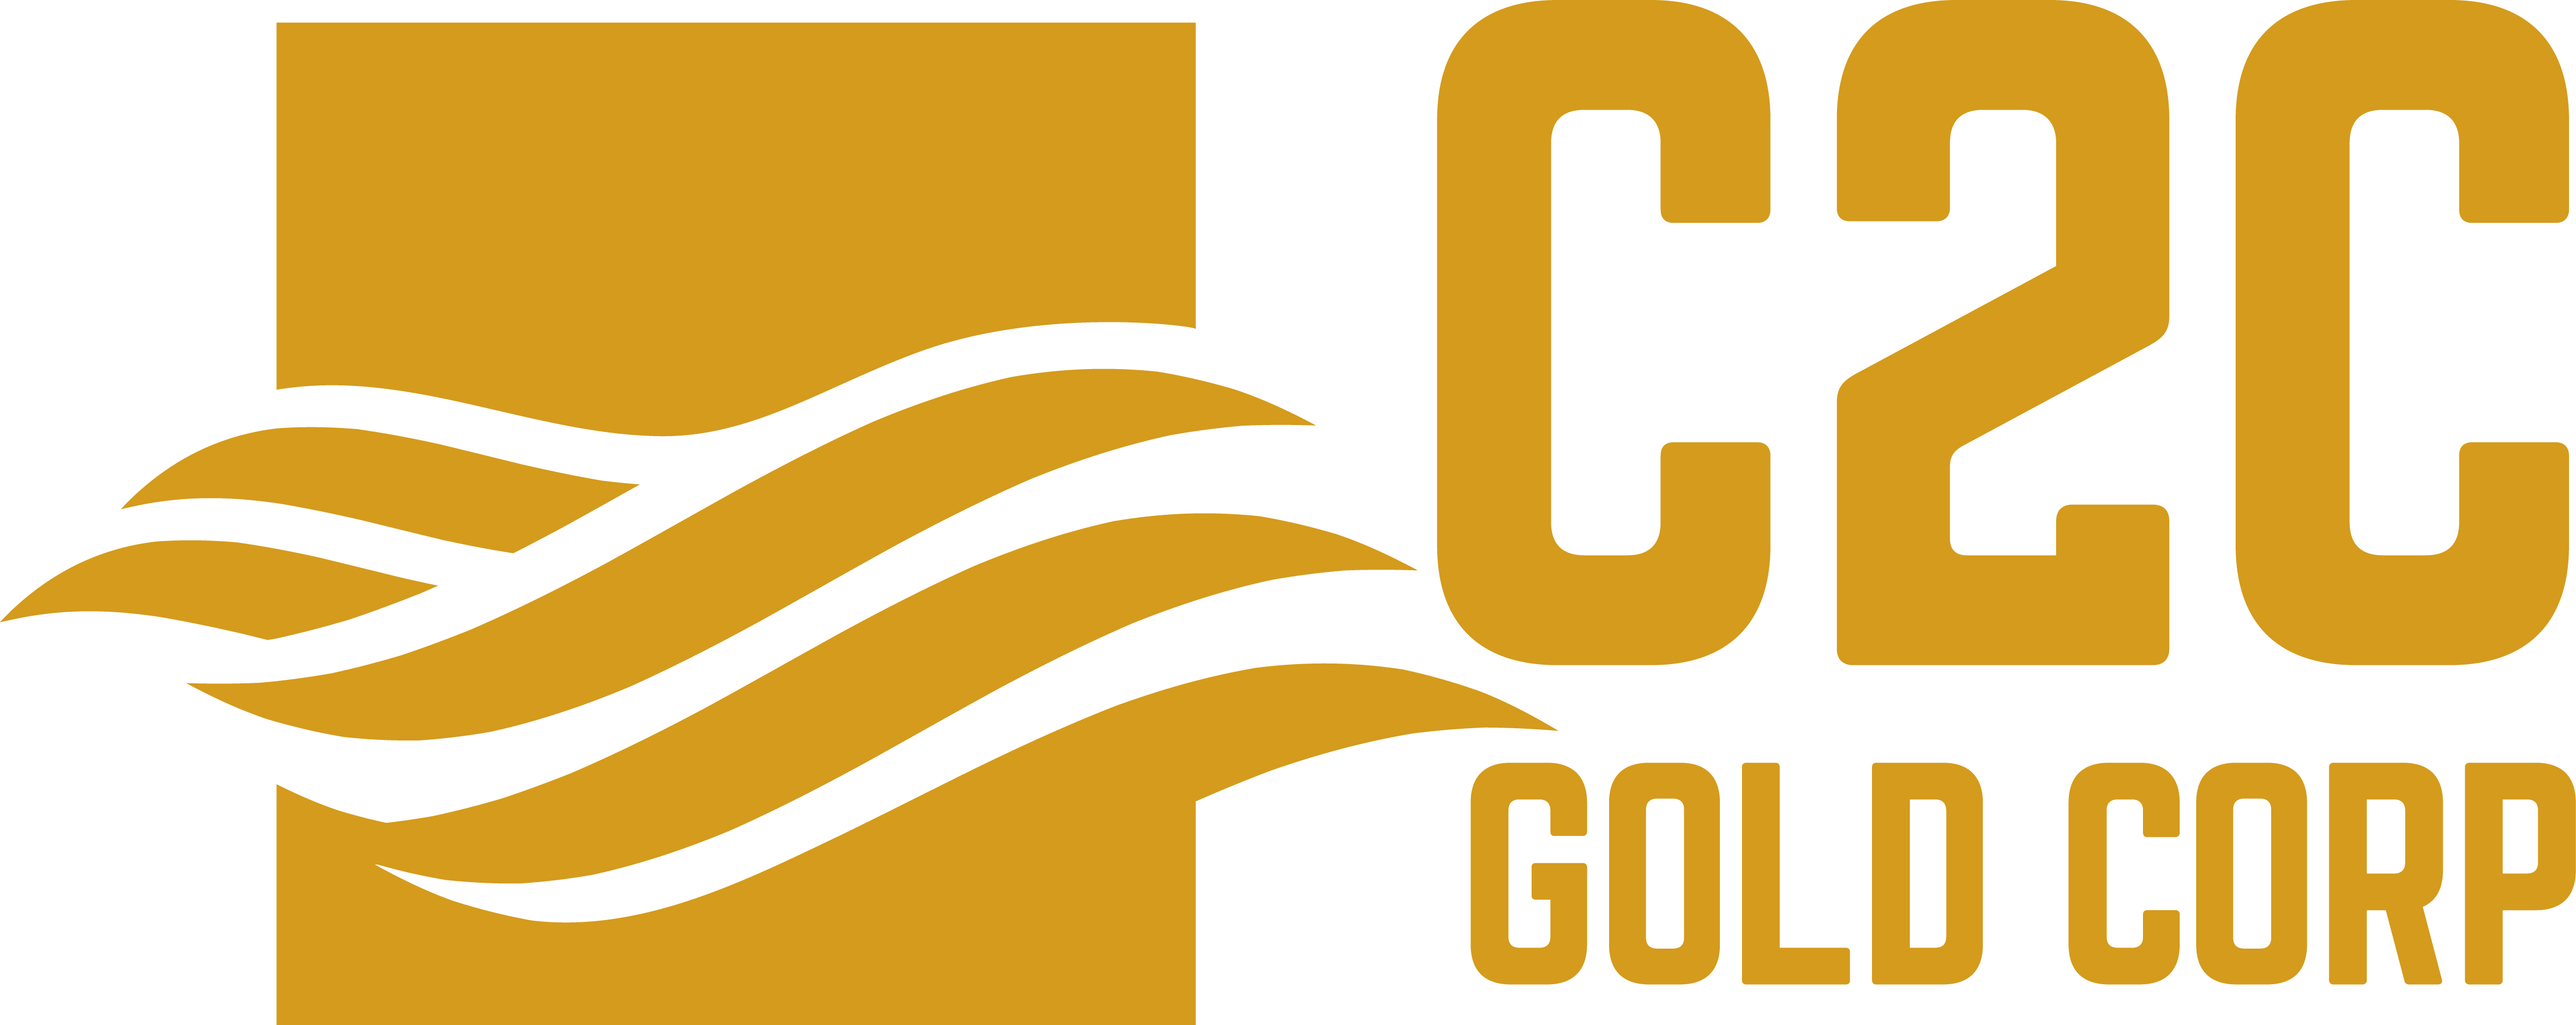 Taku Gold Announces Completion of Name Change To C2C Gold Corp